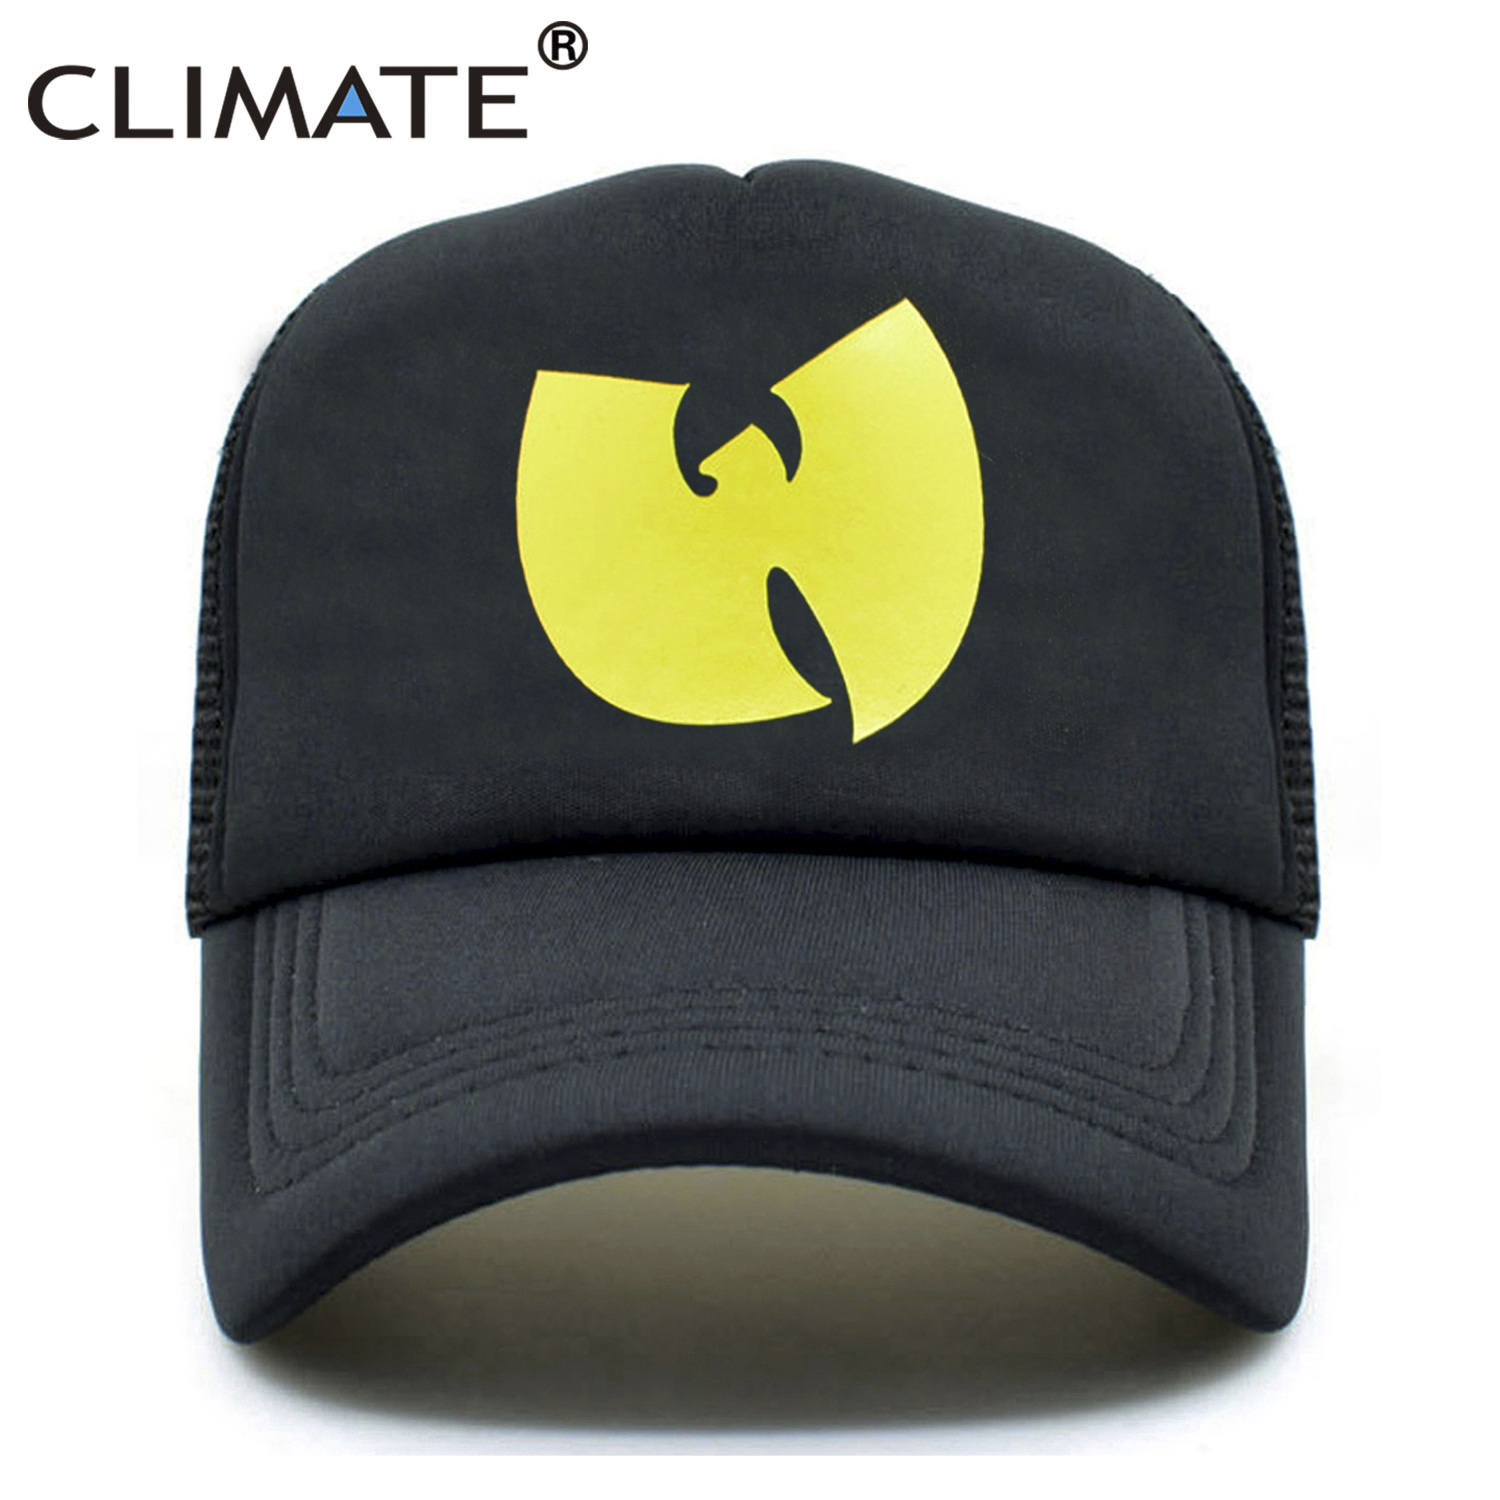 CLIMATE New Men Trucker Cap Rapper Wutang Hiphop Cap GZA WU-TANG CLAN Fans Summer Cool Cap Black Baseball Mesh Caps Hat For Men